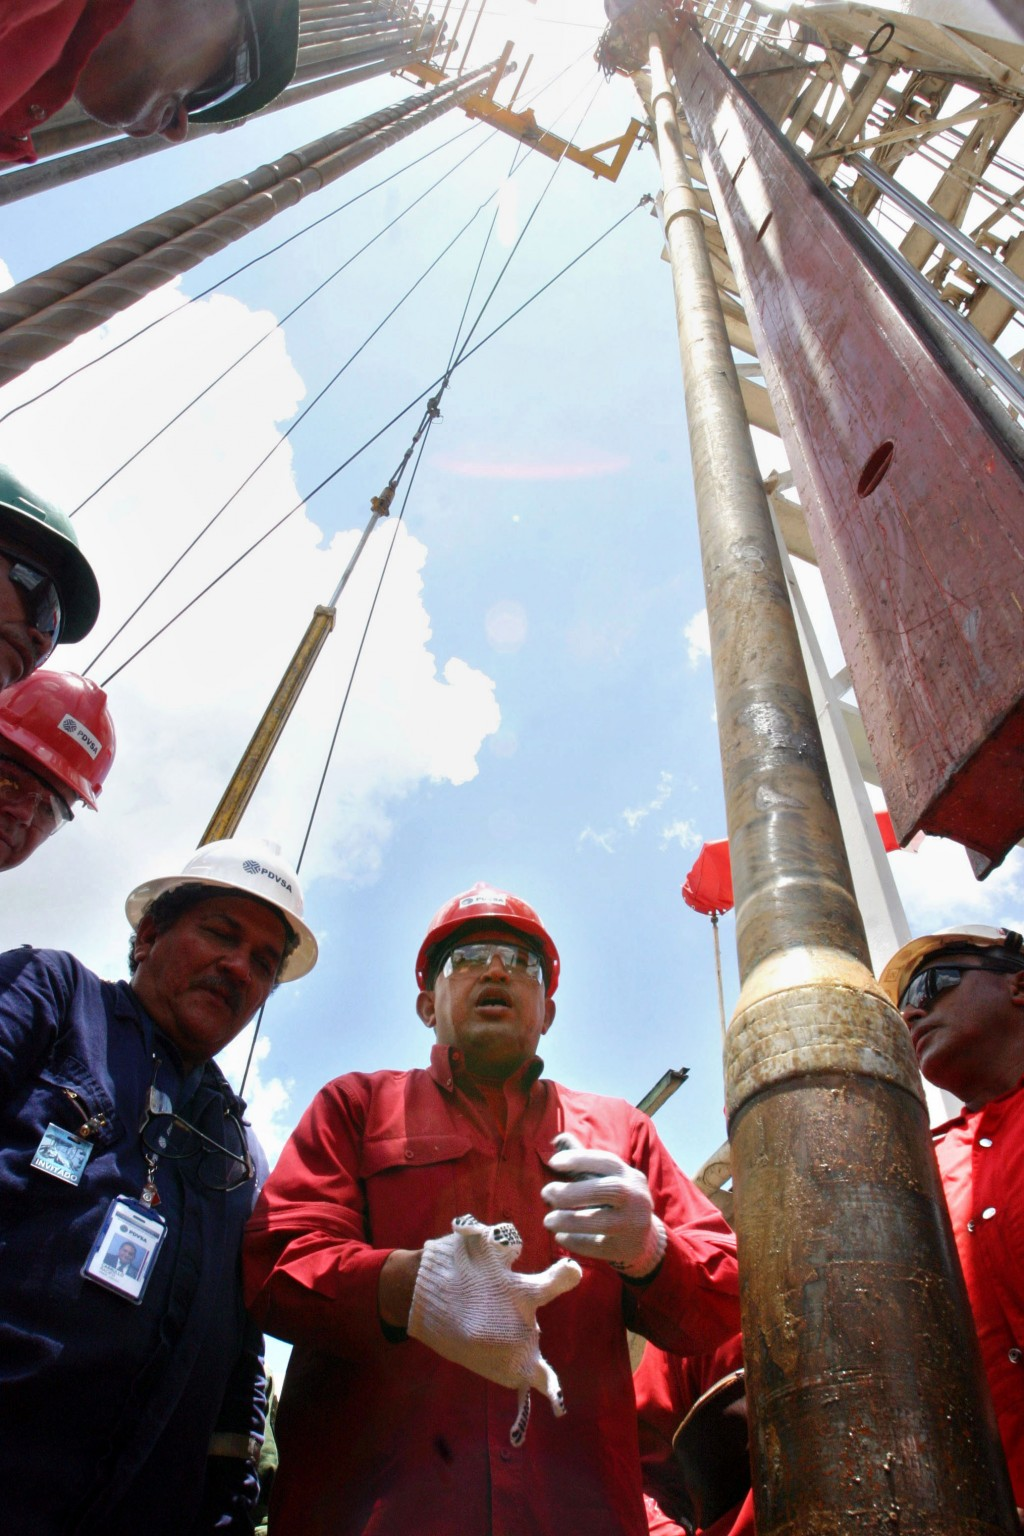 FILE - In this Aug. 10, 2006 file photo, President Hugo Chavez visits oil workers on an oil drill platform in the Orinoco oil belt region in Venezuela...